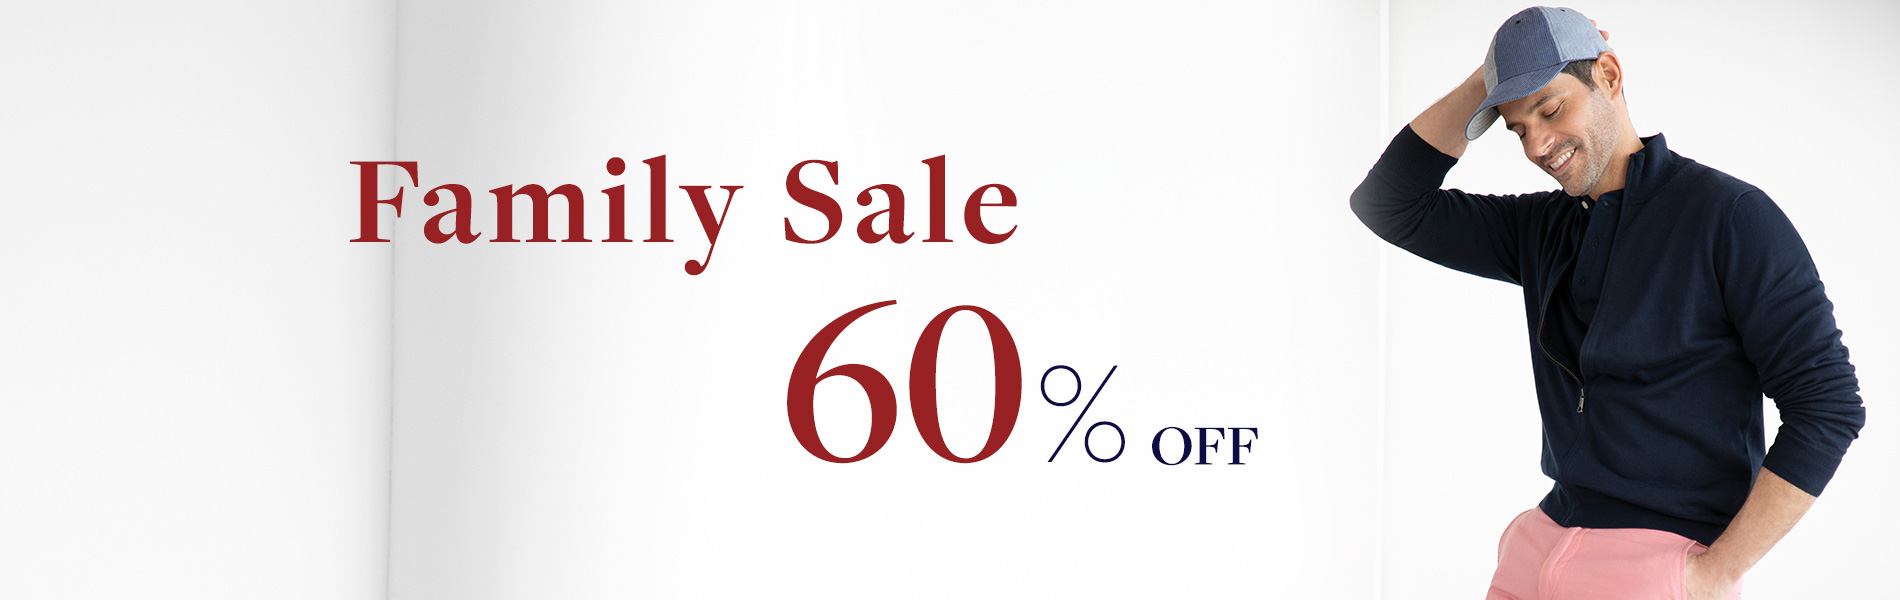 Family Sale 60% OFF